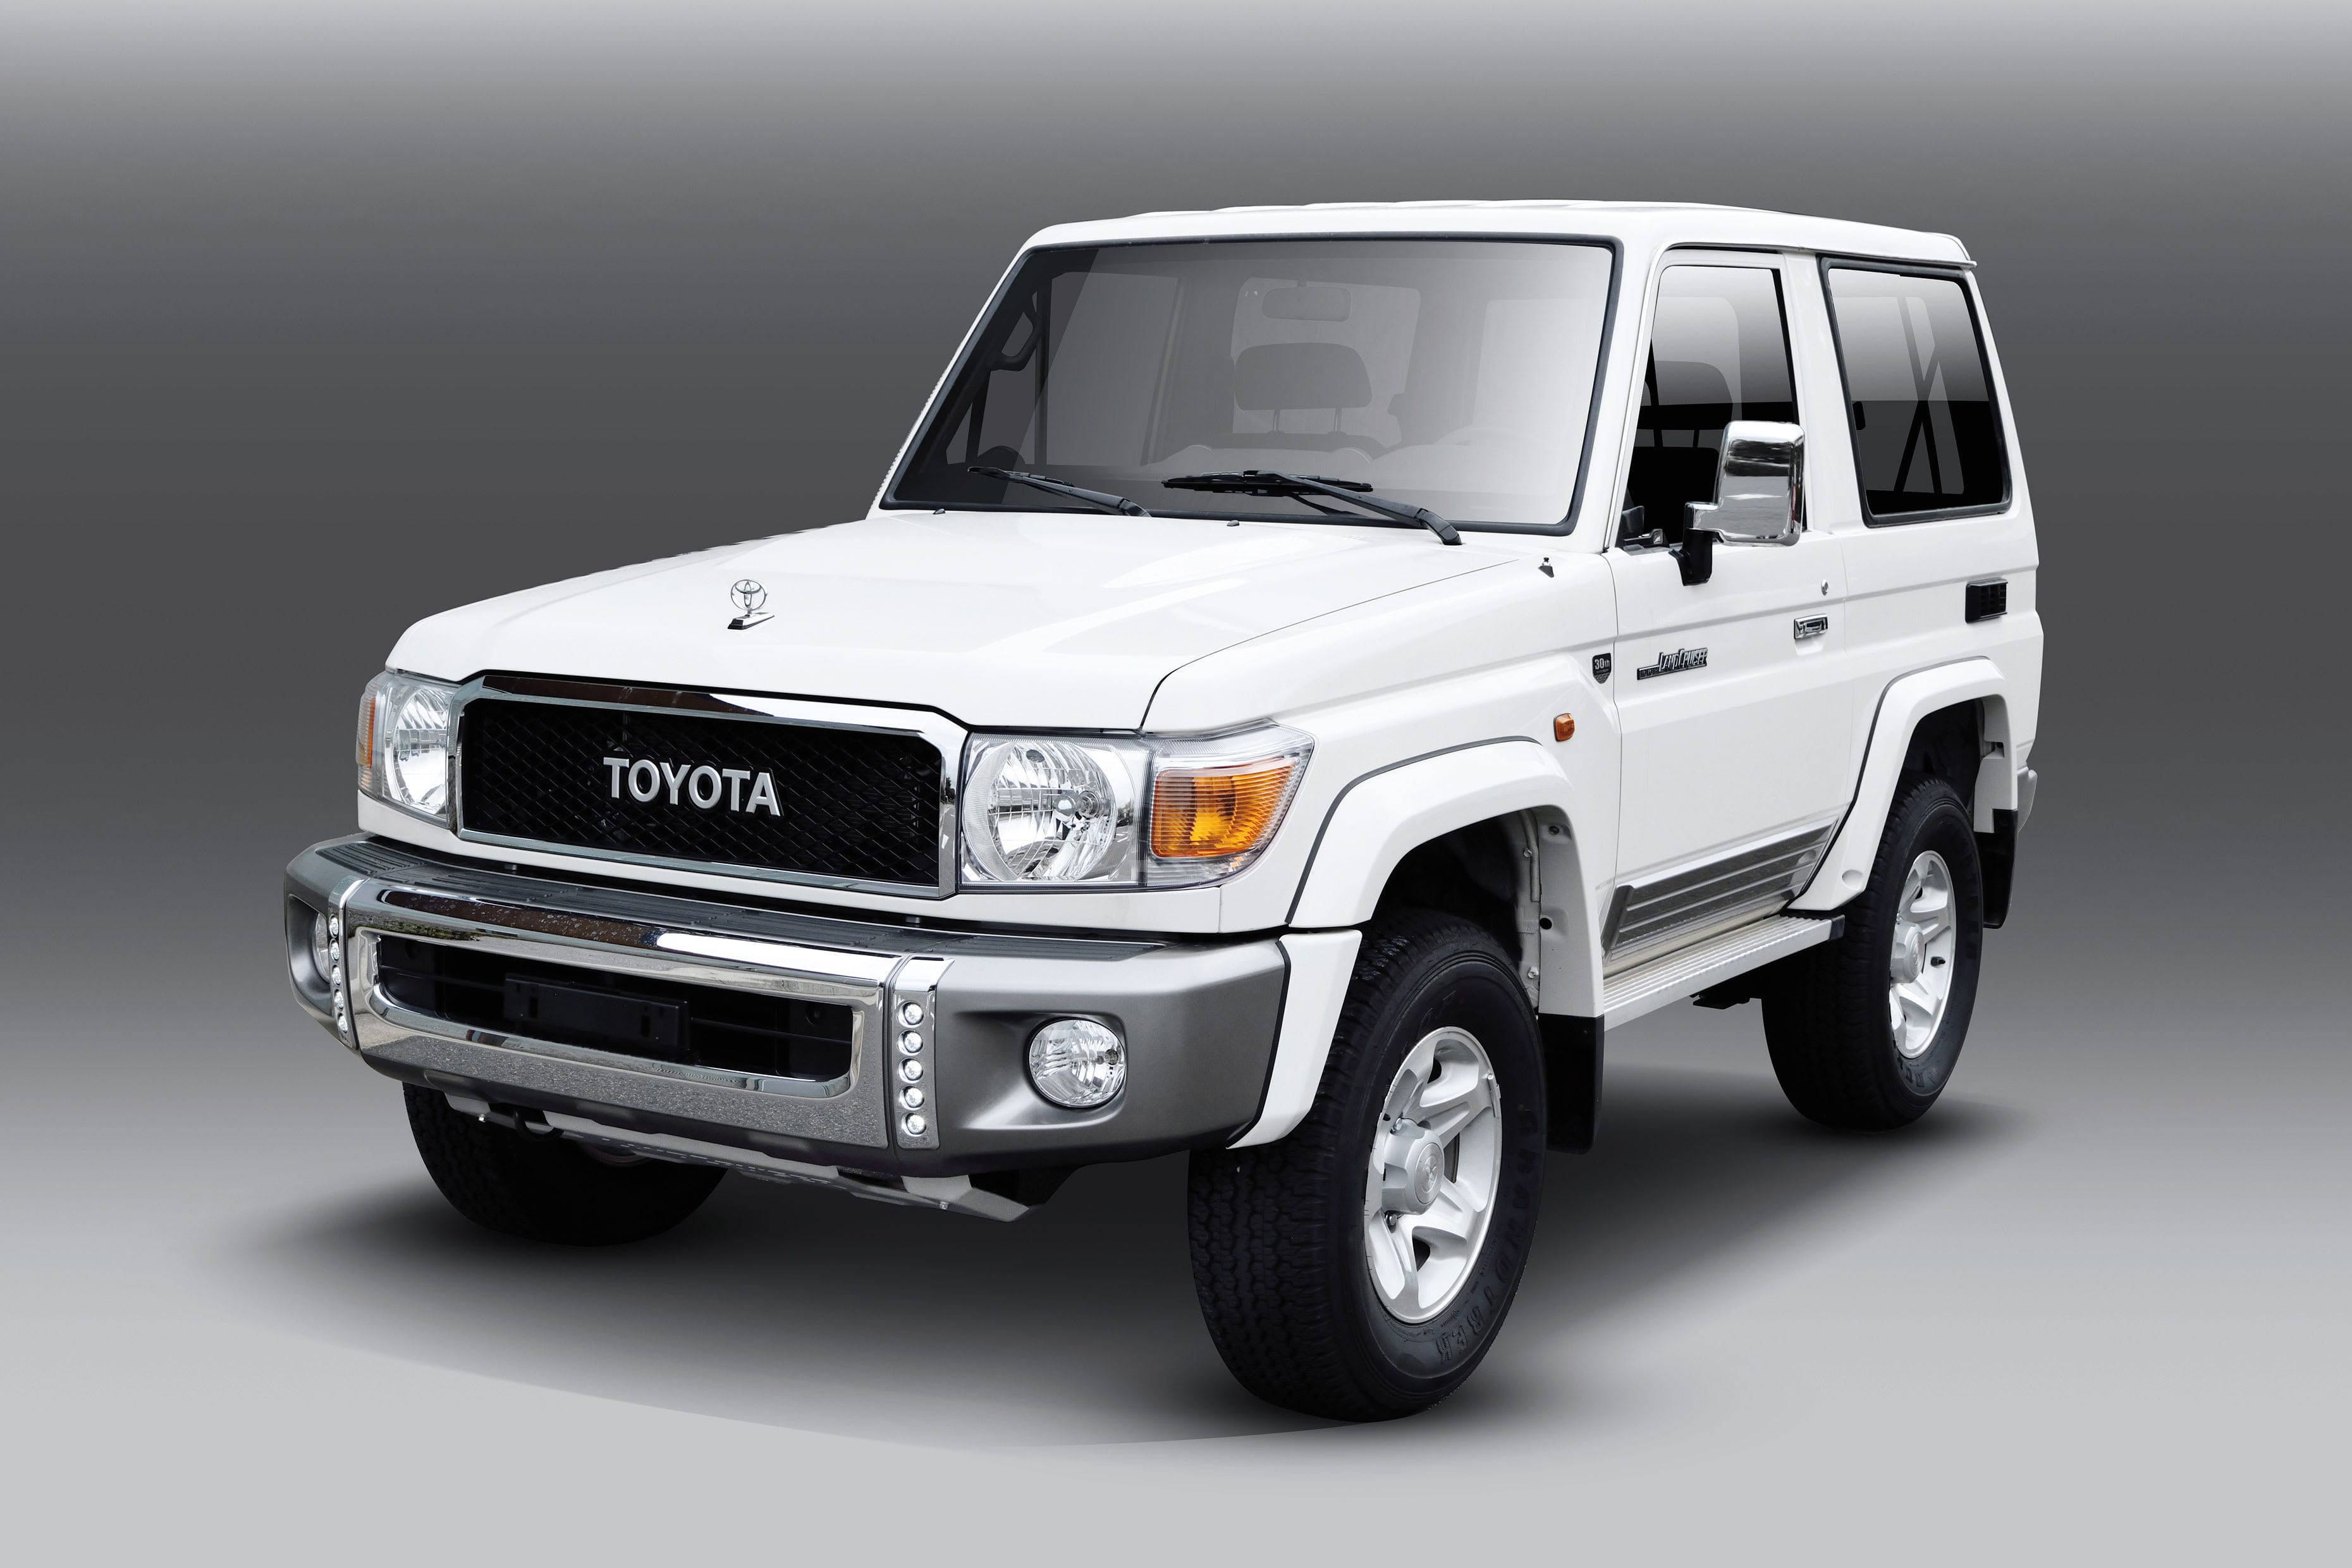 2019 toyota land cruiser pickup lc70 dc 4 0l 4 4 price. Black Bedroom Furniture Sets. Home Design Ideas